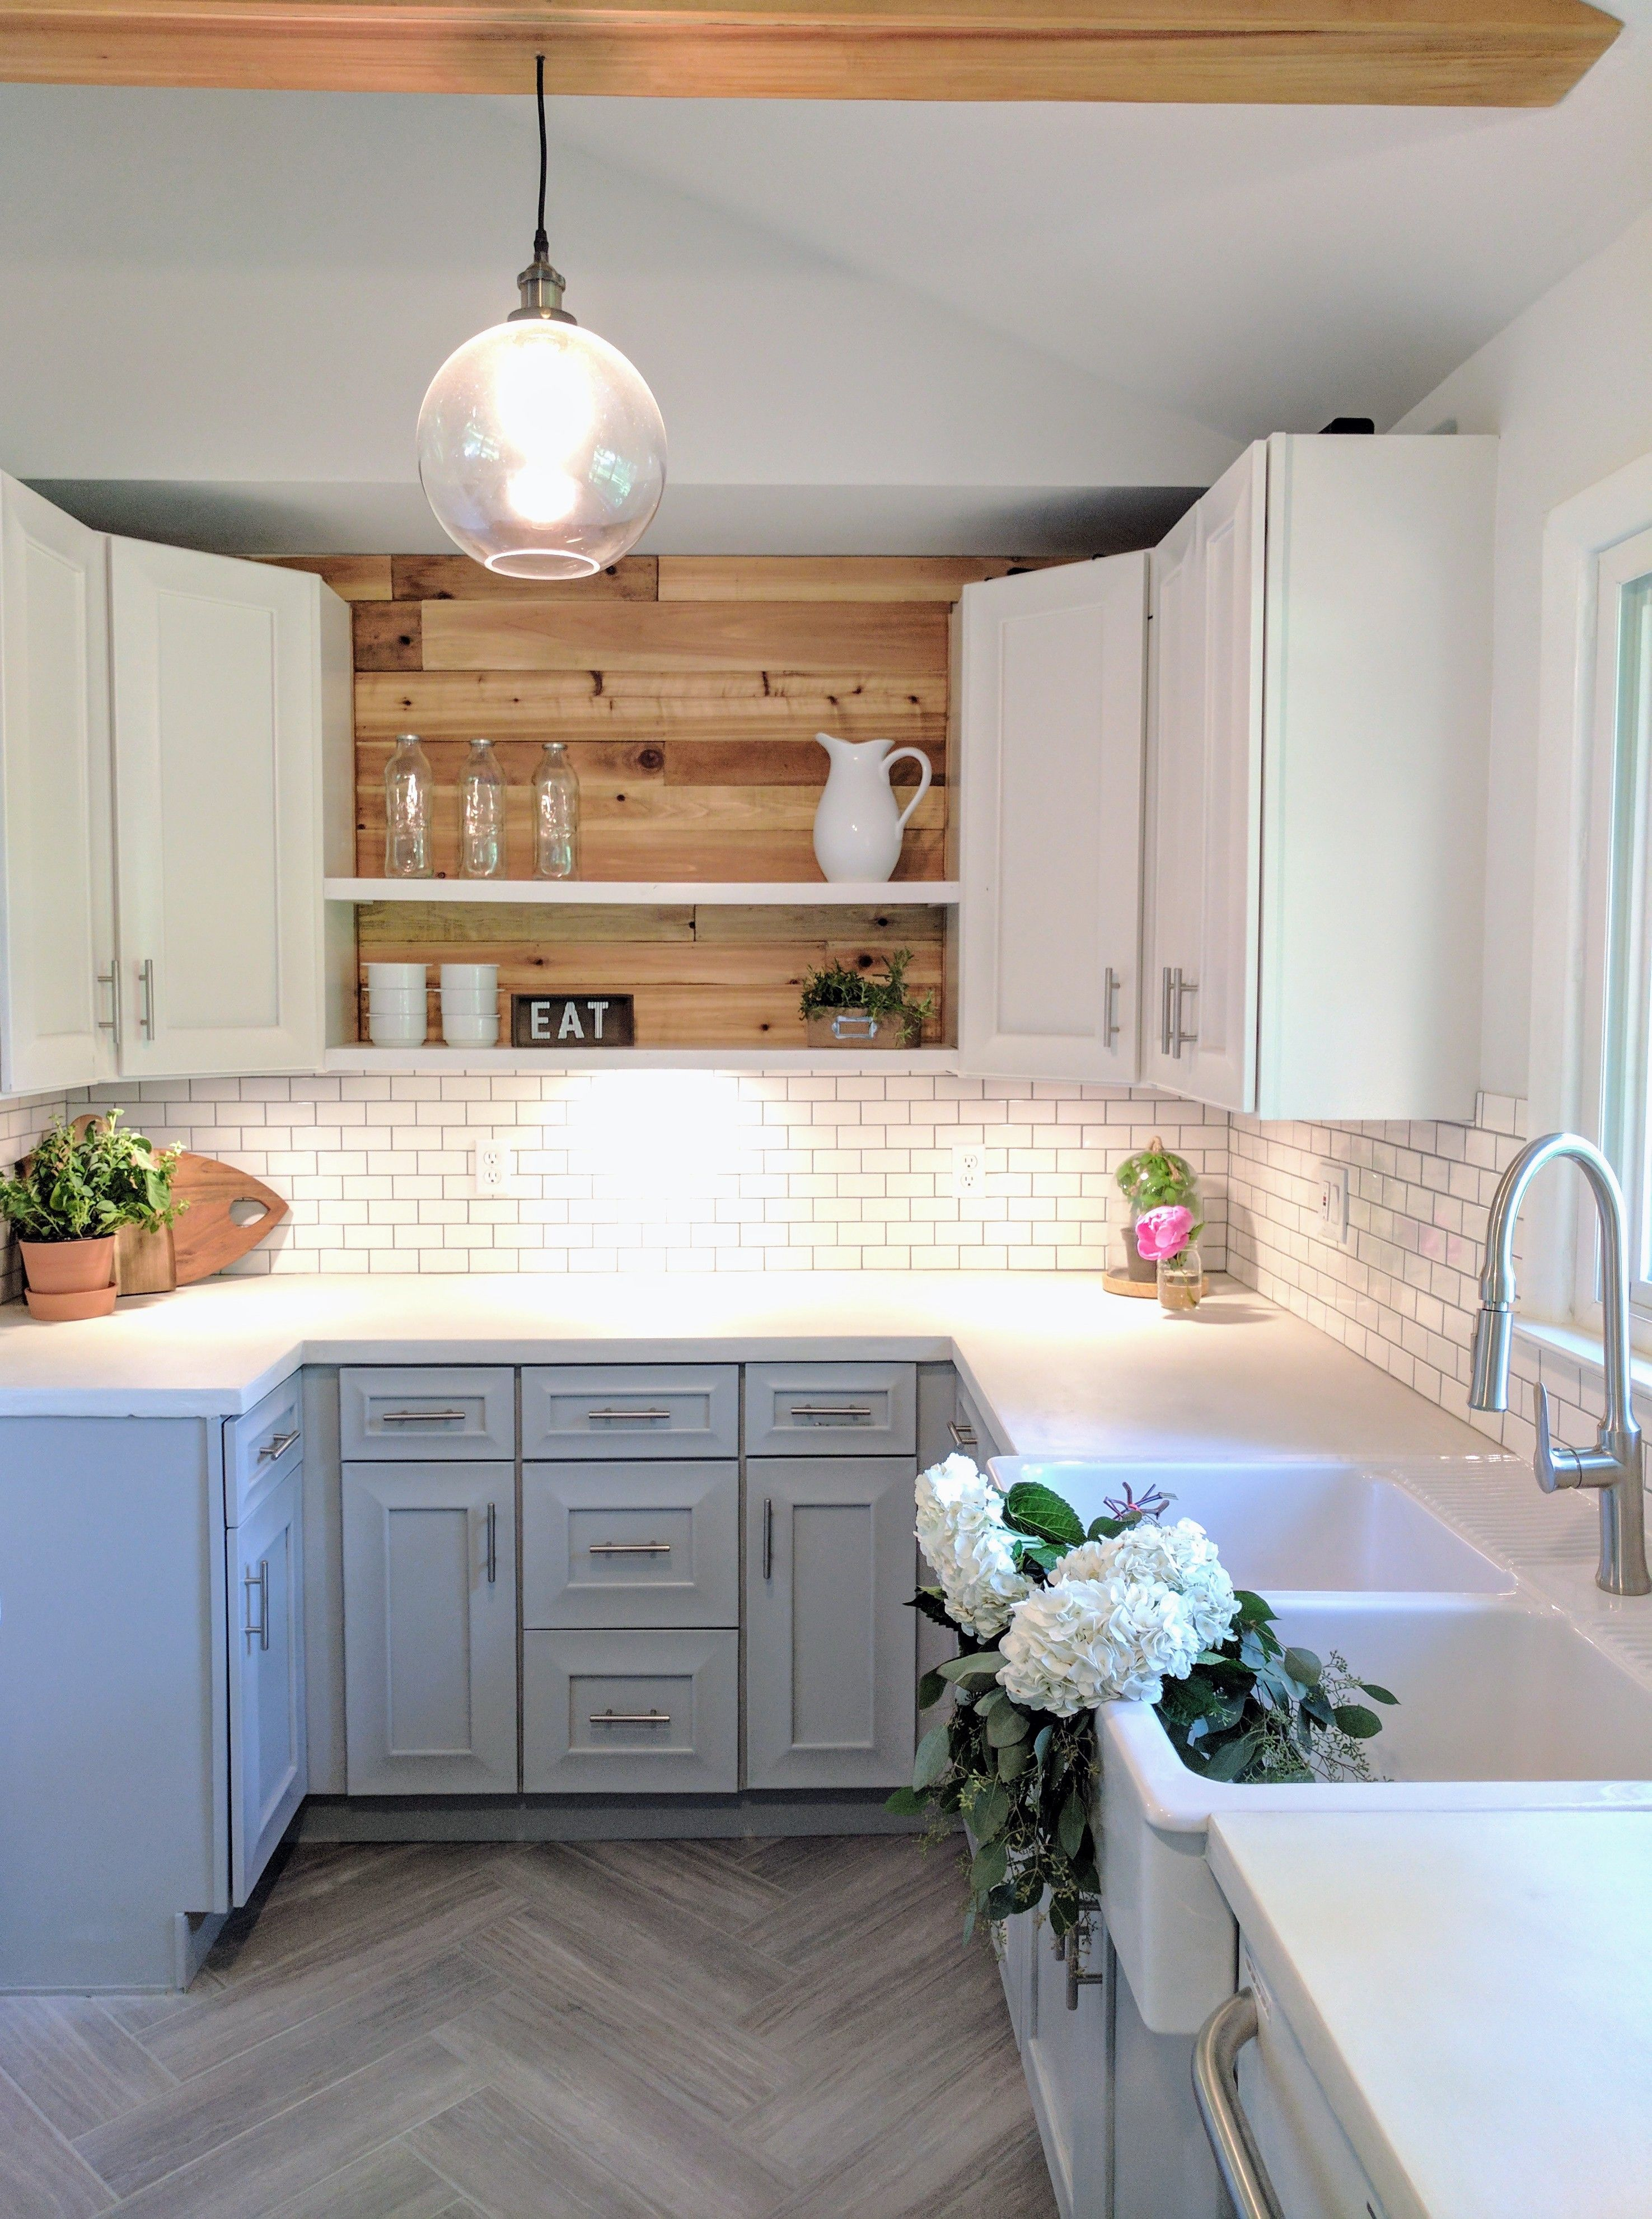 5 Ways To Make A Small Kitchen Feel Bigger Kitchen Design Small Small Kitchen Renovations Kitchen Remodel Small